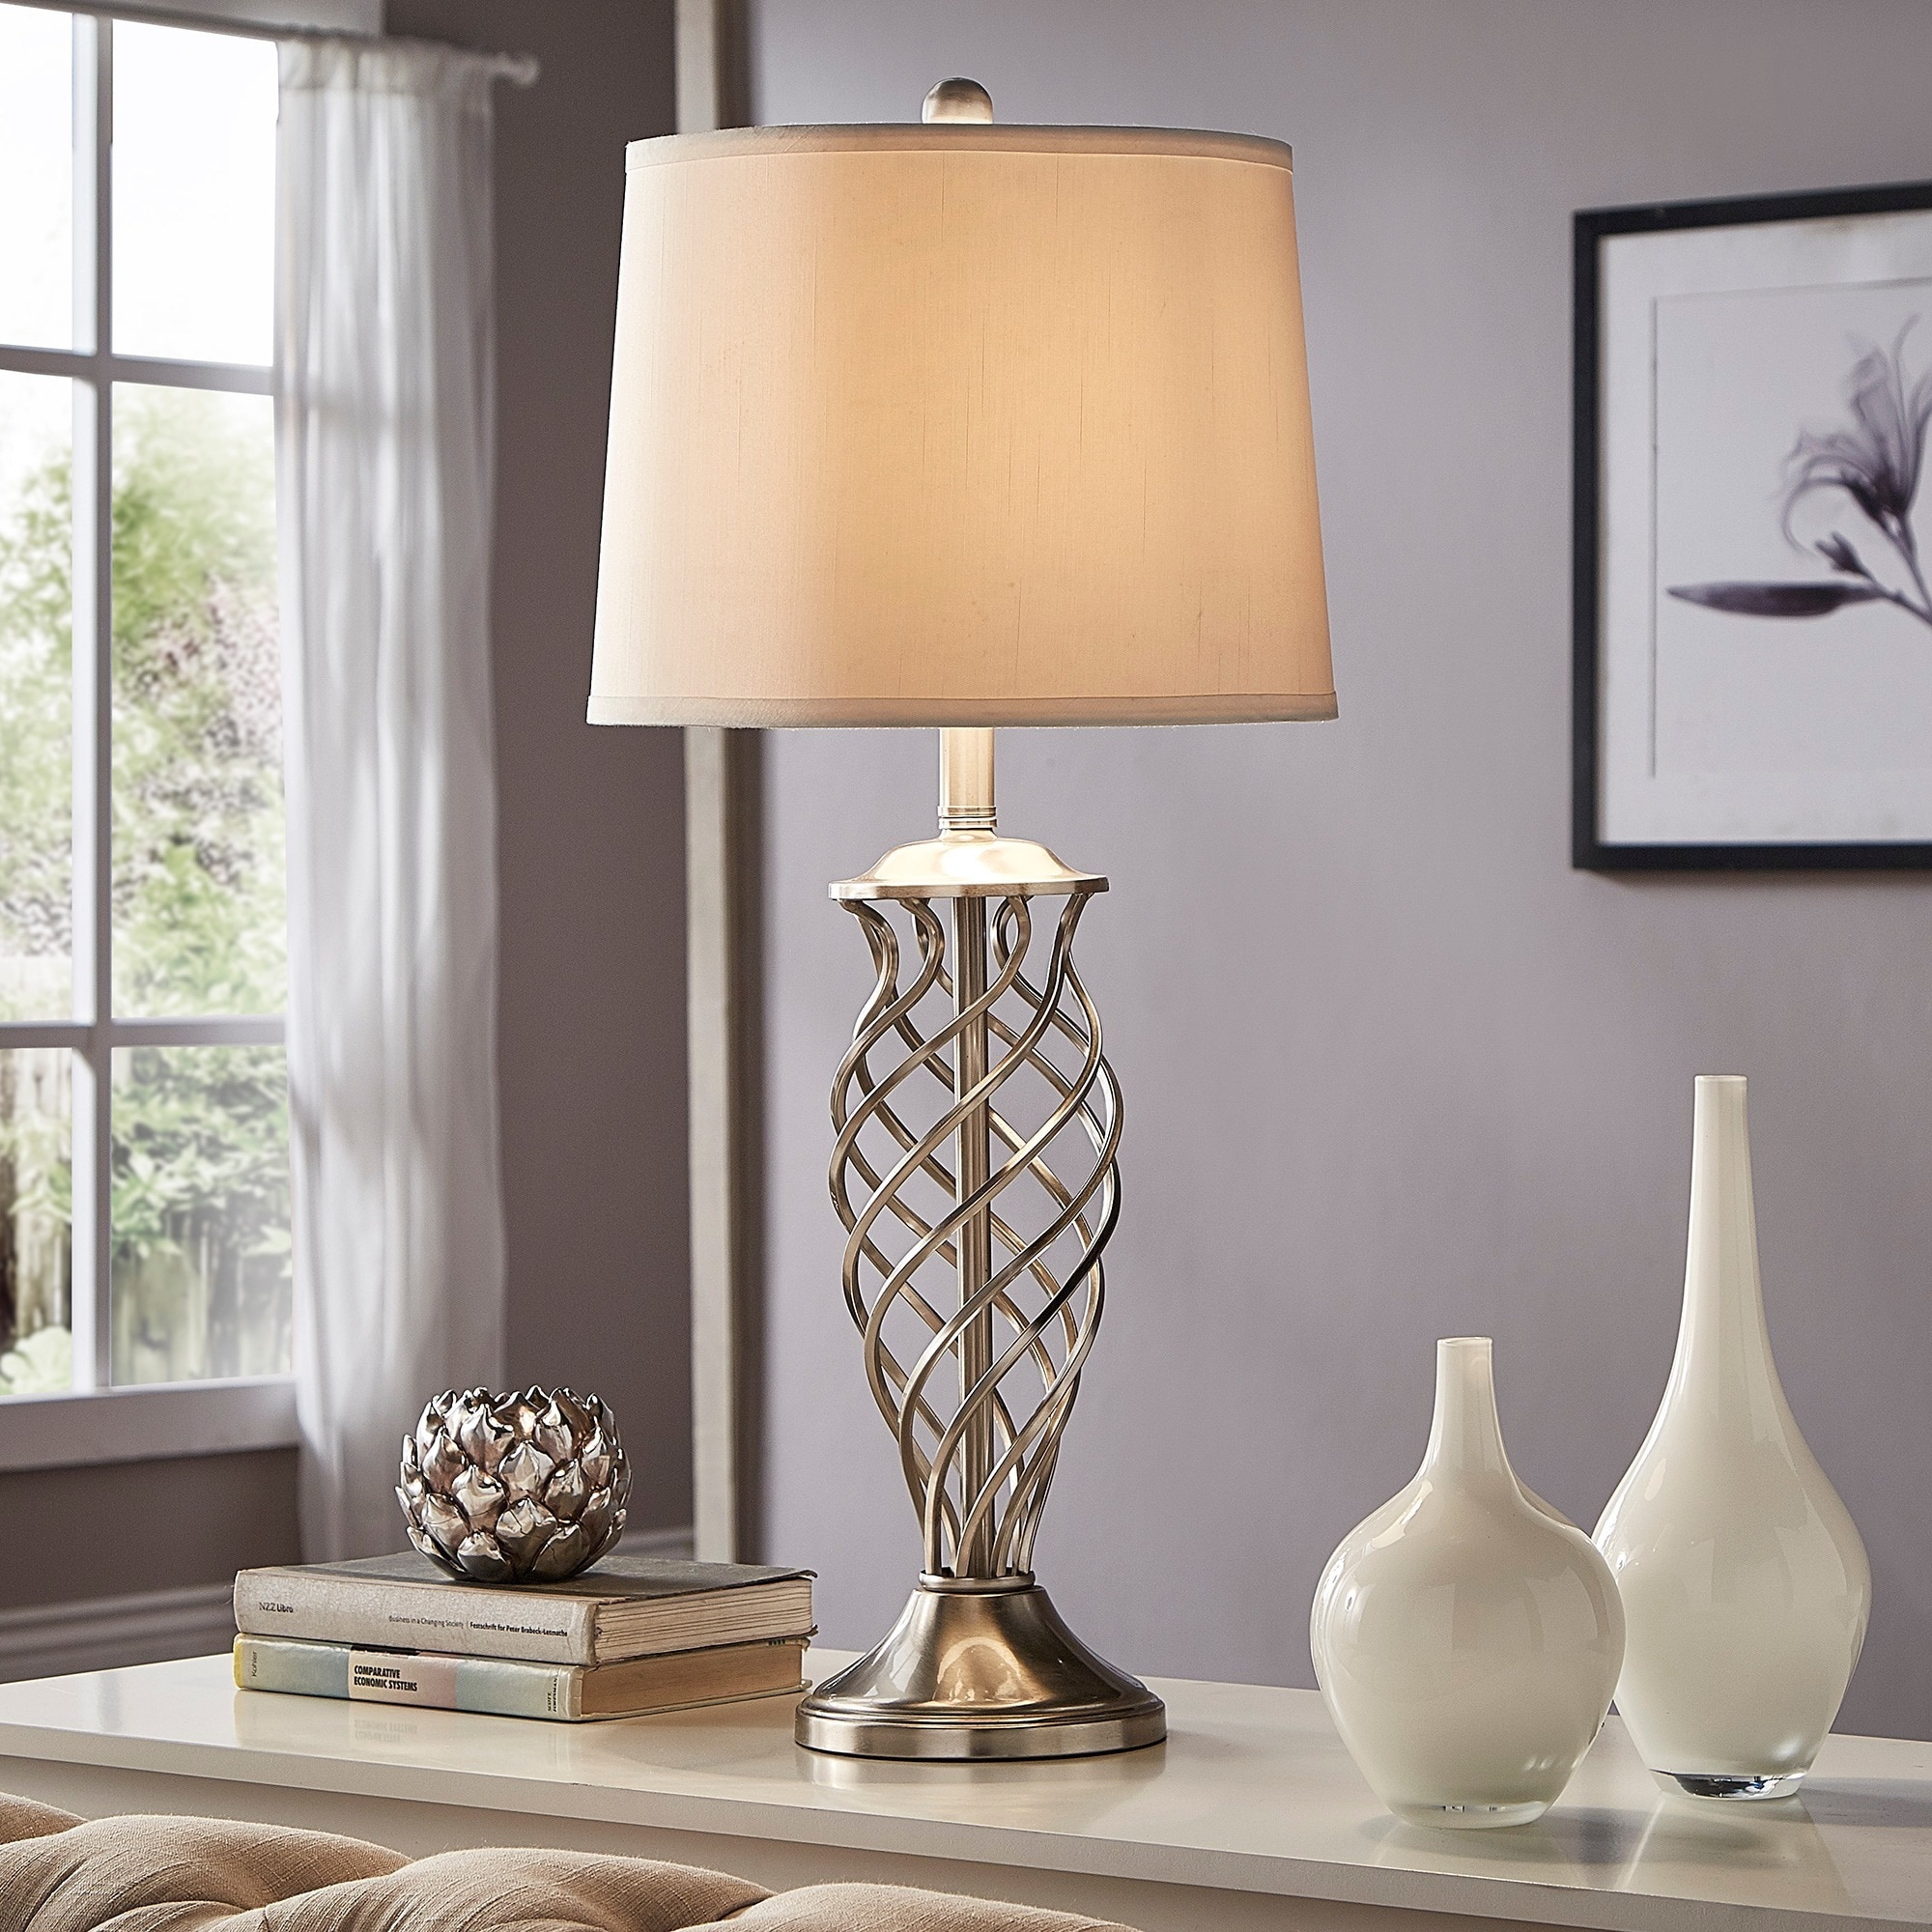 Inspire Cage Metal Table Lamp